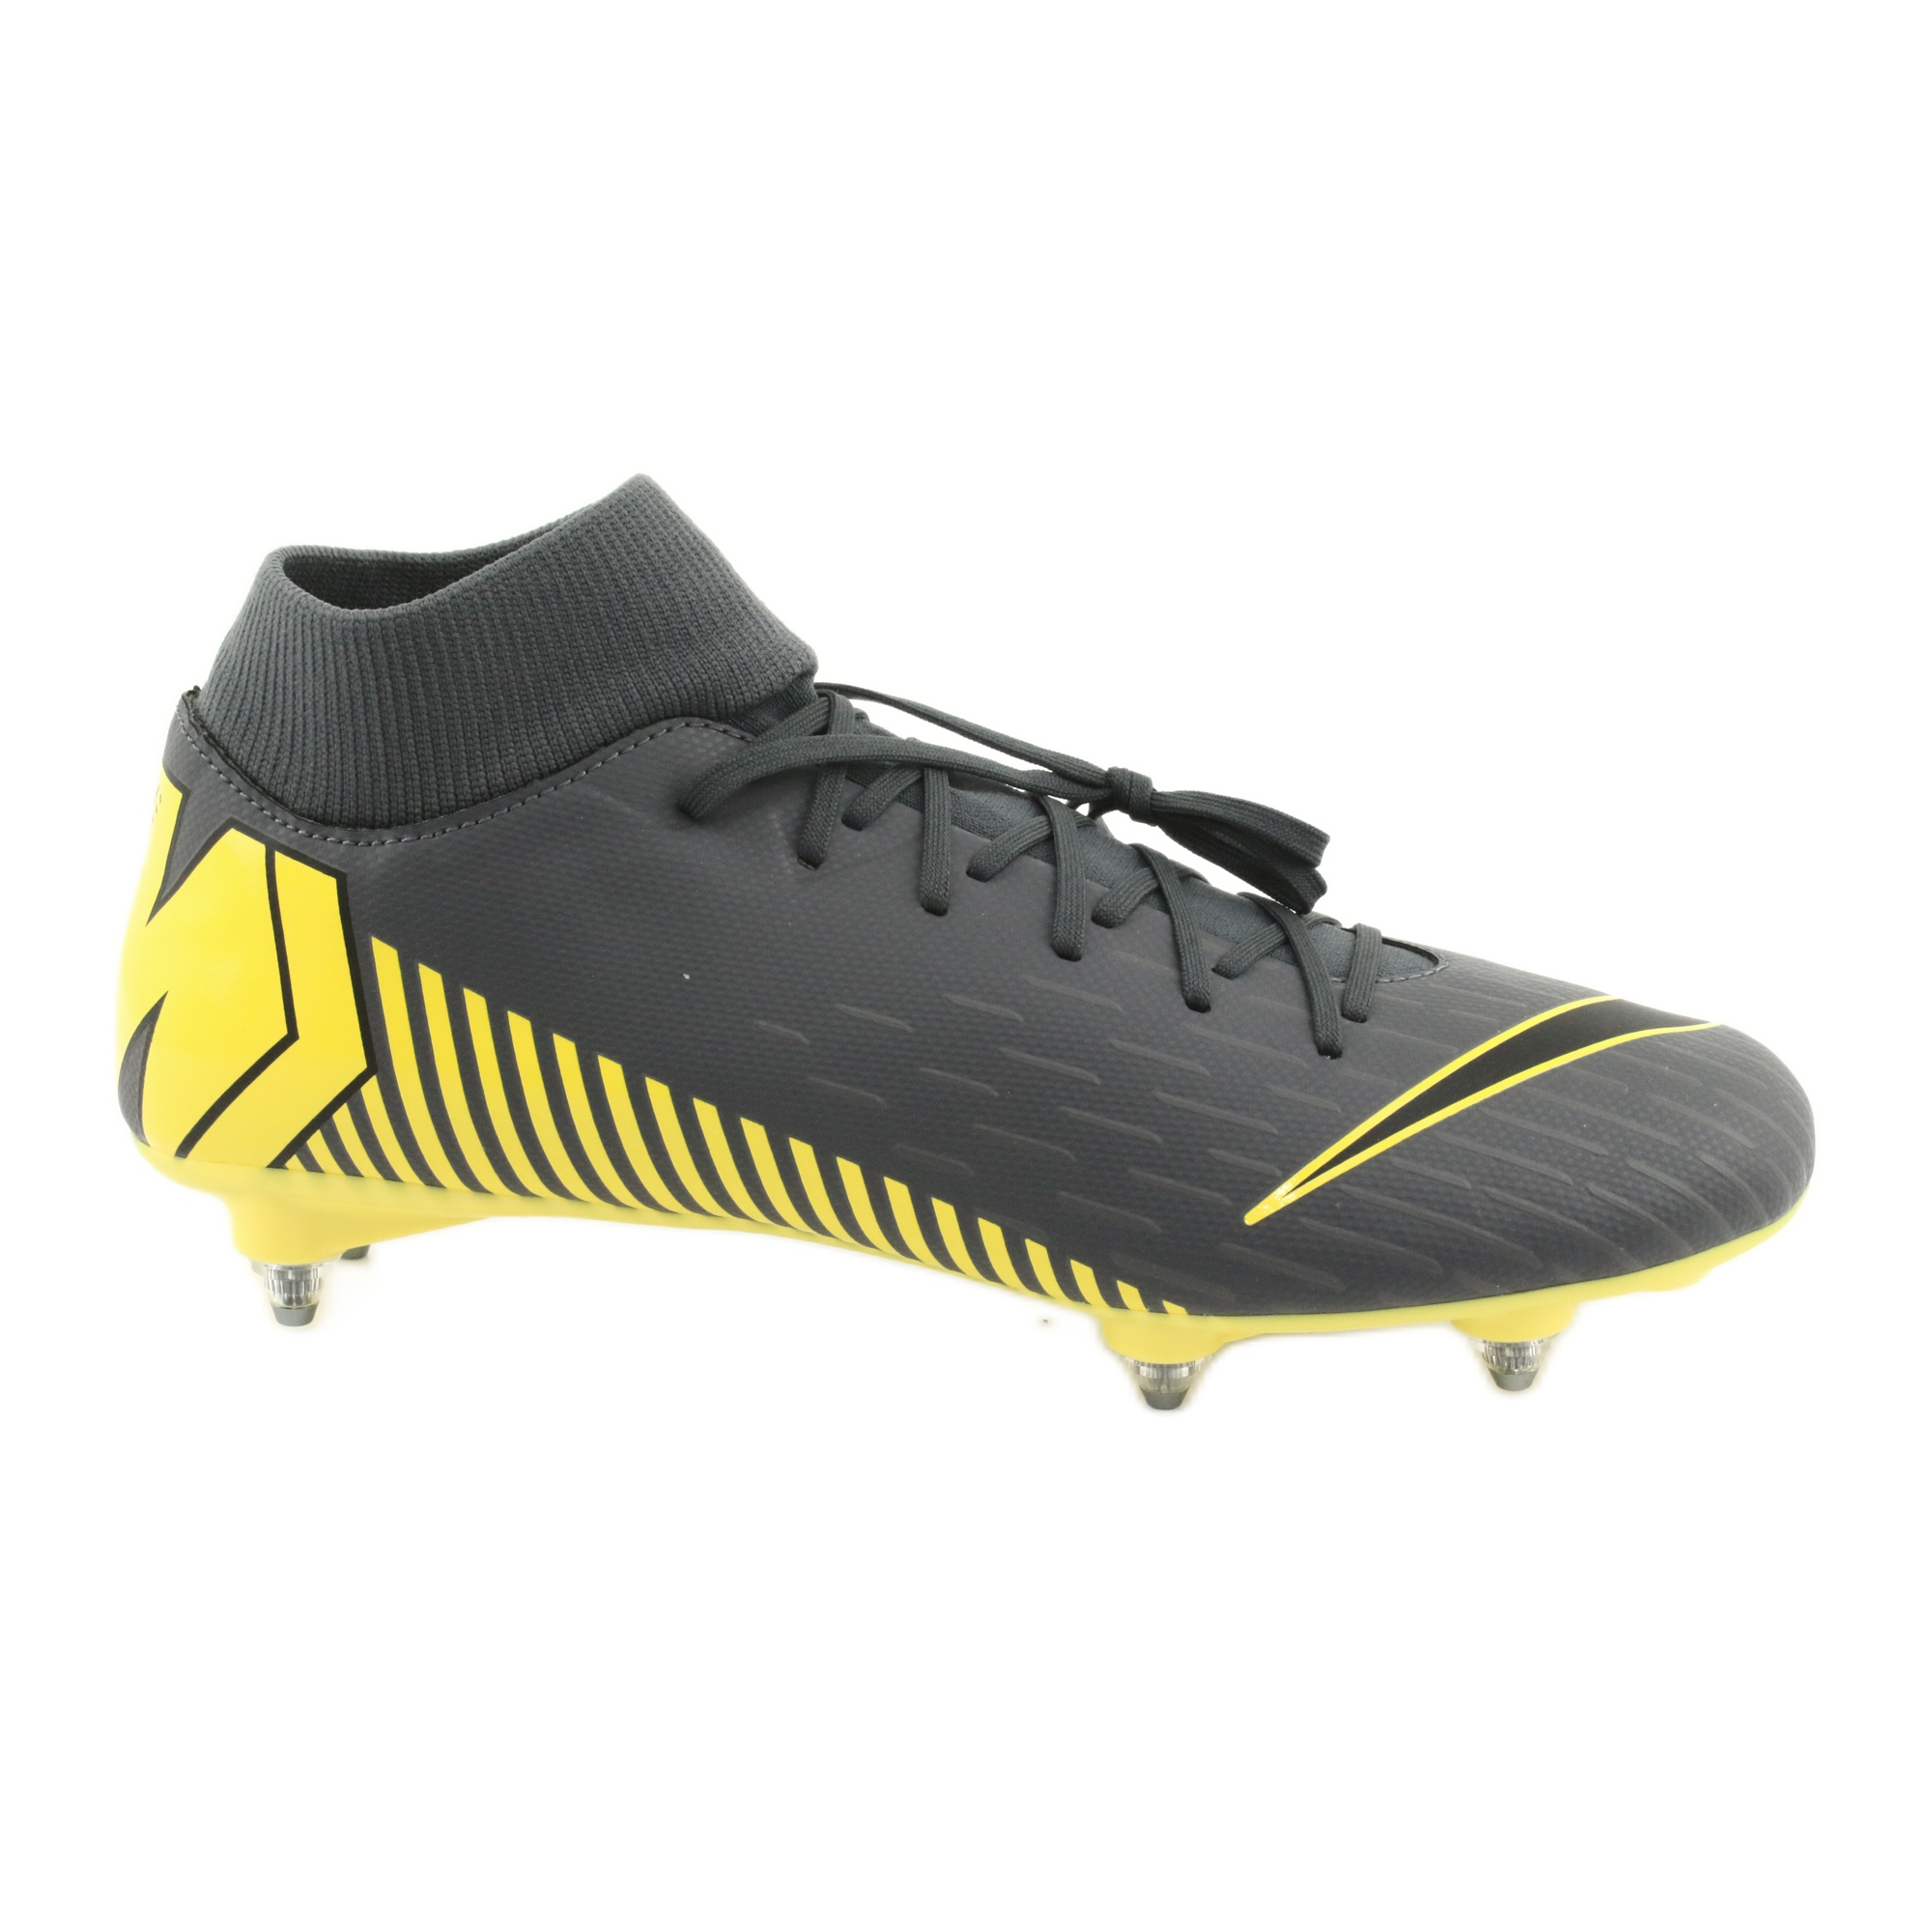 watch 4e659 d9f6d Nike Mercurial Superfly 6 Academy Sg M AH7364-070 Football Shoes